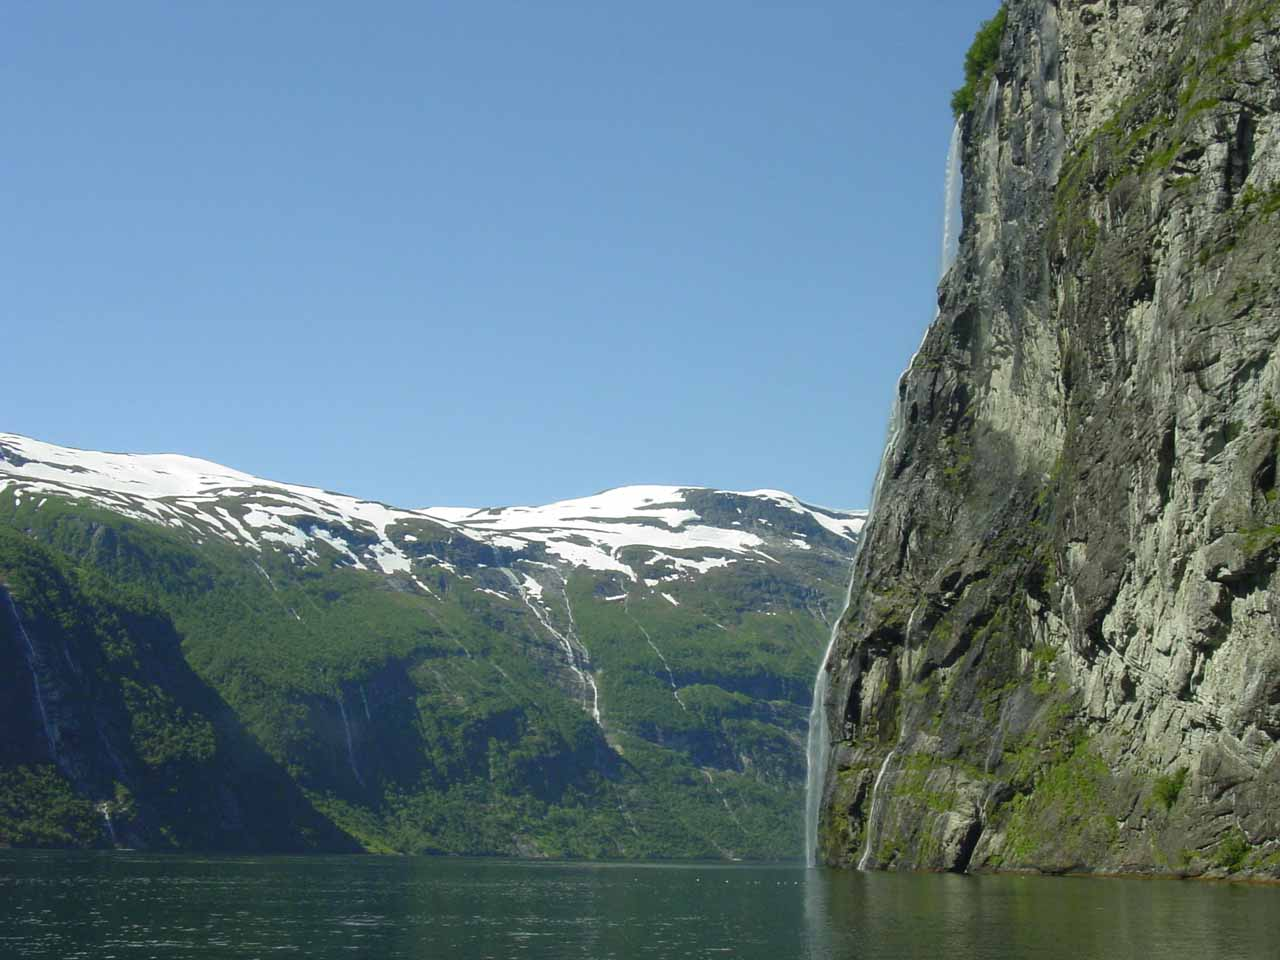 Looking ahead towards the profile of Brudesløret as well as other waterfalls in the distance